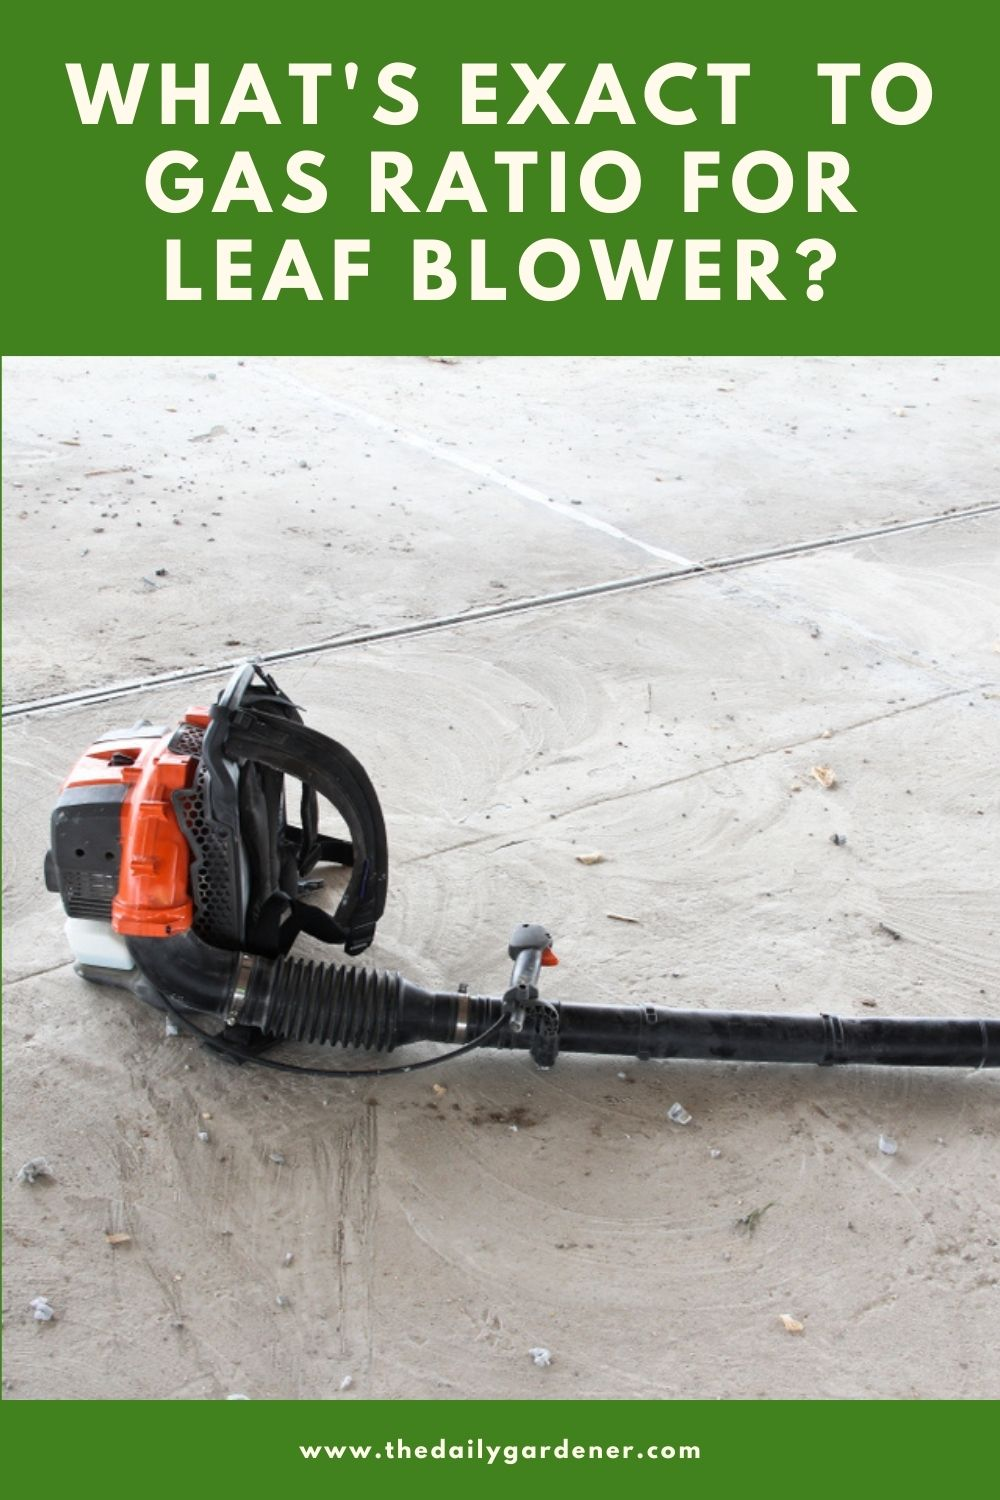 What's Exact to Gas Ratio for Leaf Blower 2